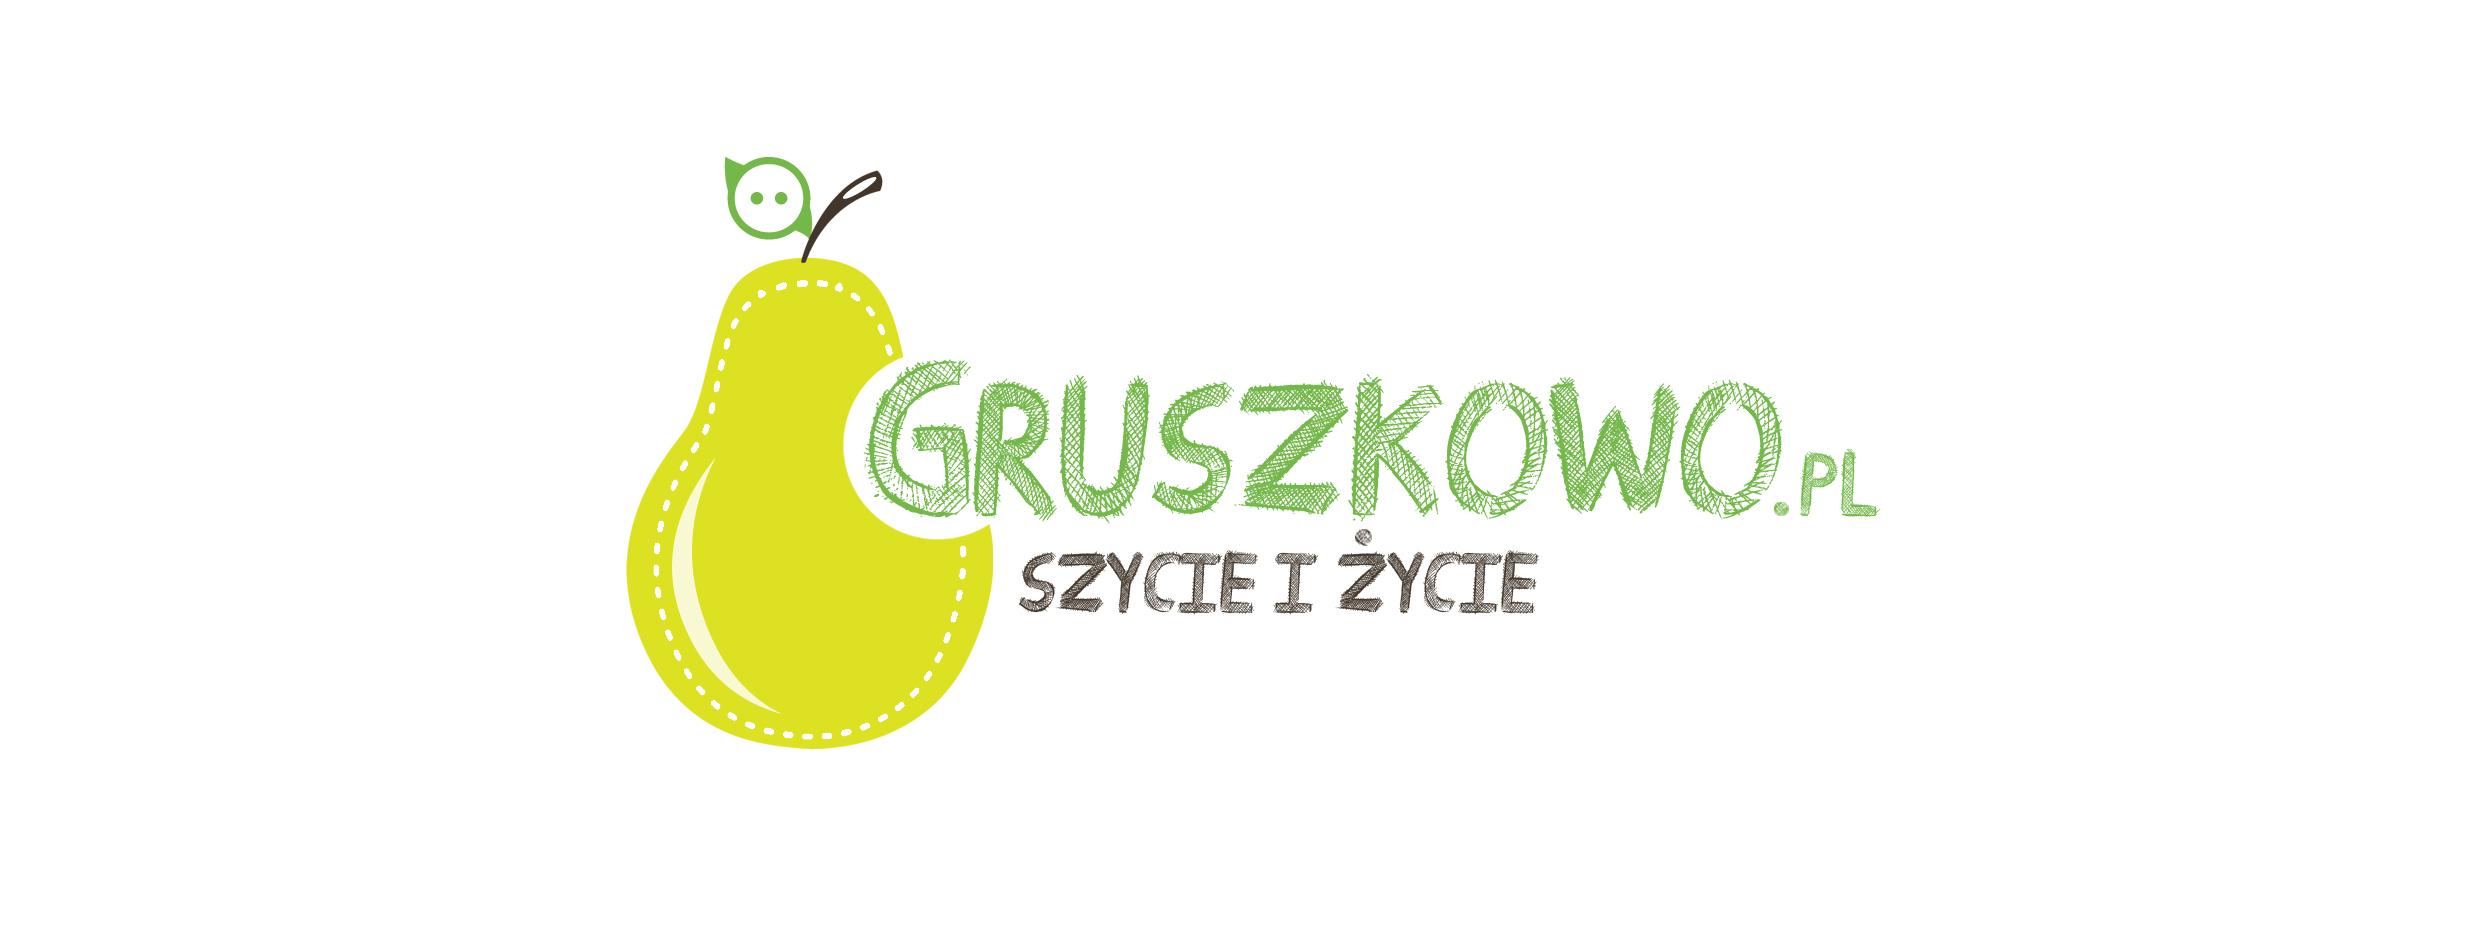 Gruszkowo.pl Szycie i Życie - Blog Parentingowy